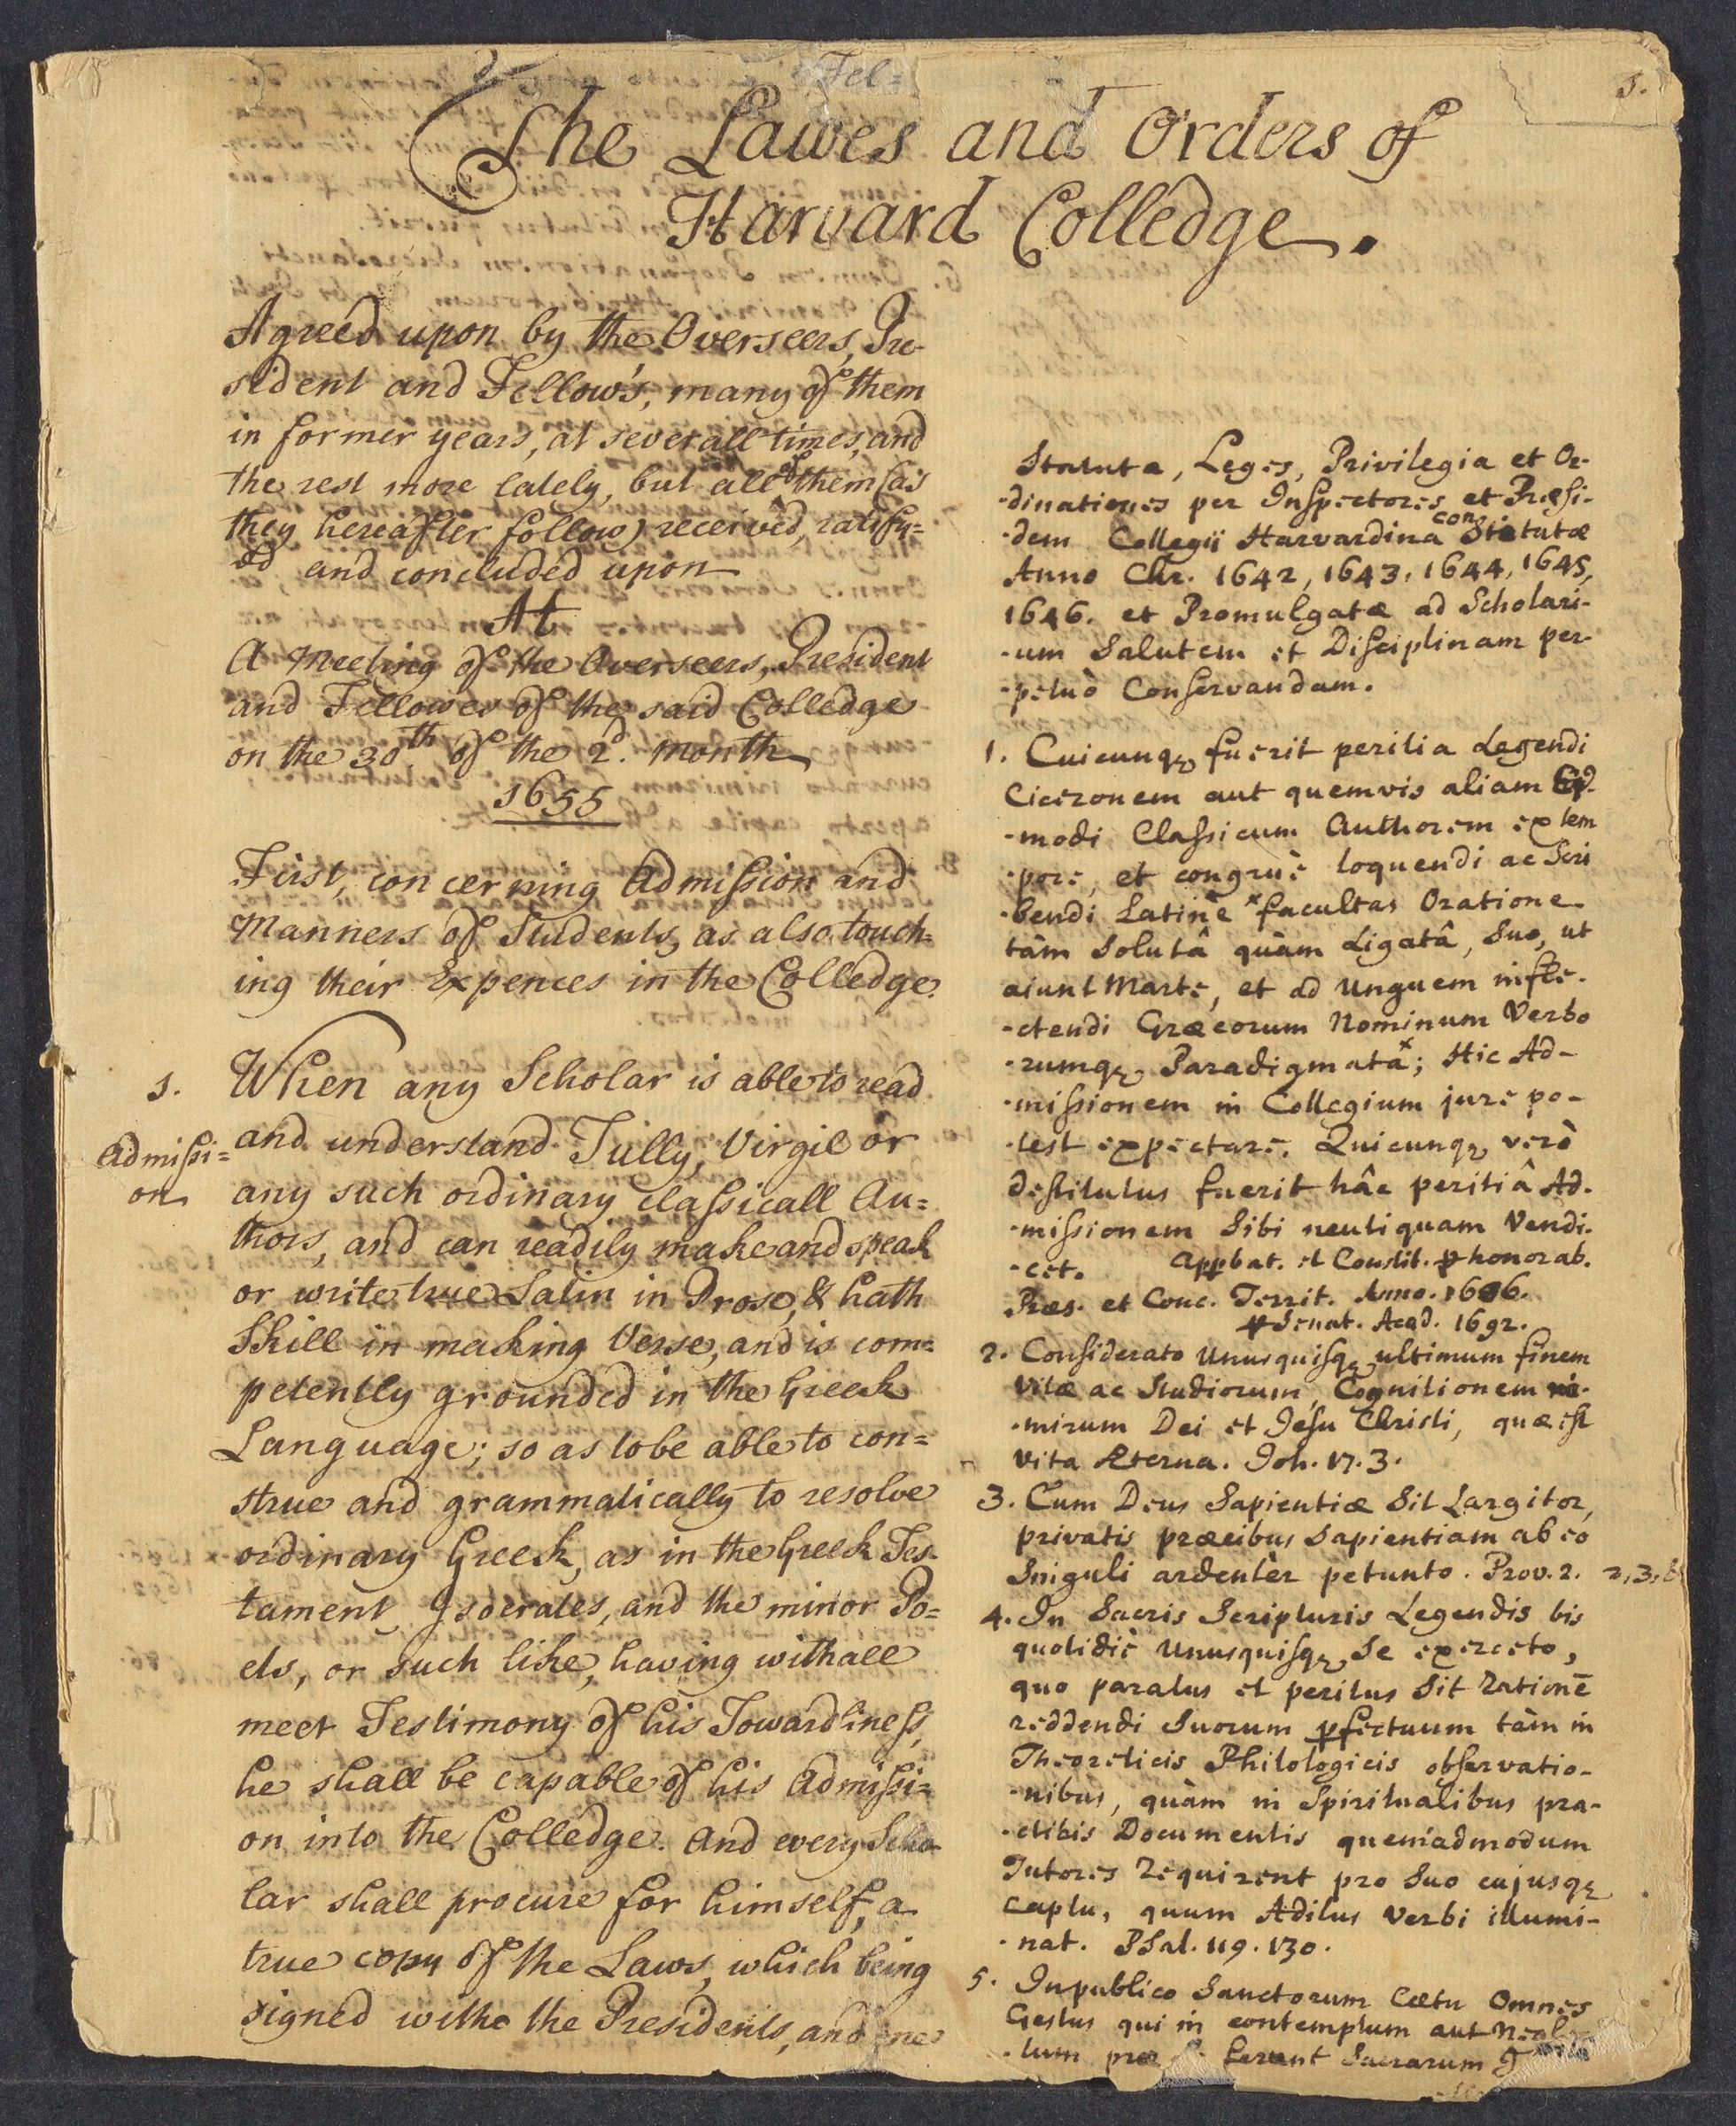 The Lawes and Orders of Harvard Colledge, 1655-1708